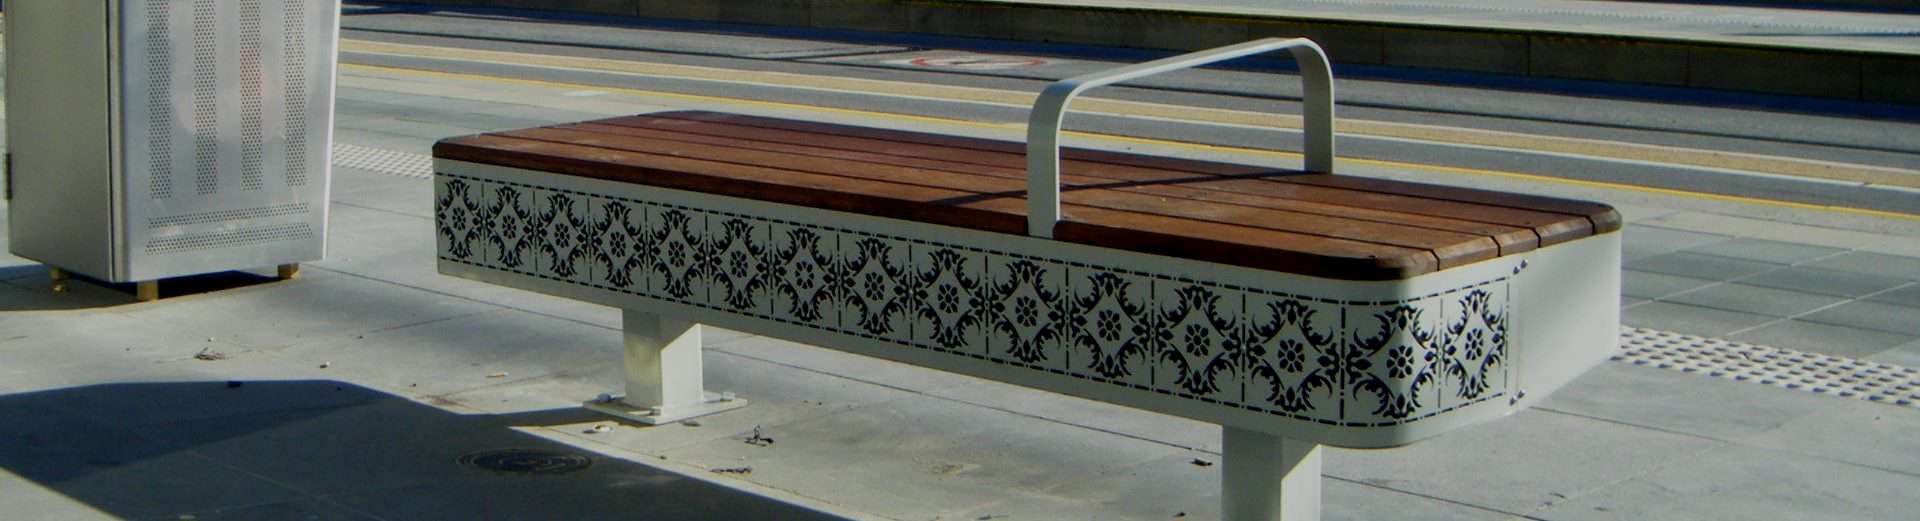 Tram Stop Northcote Street Furniture